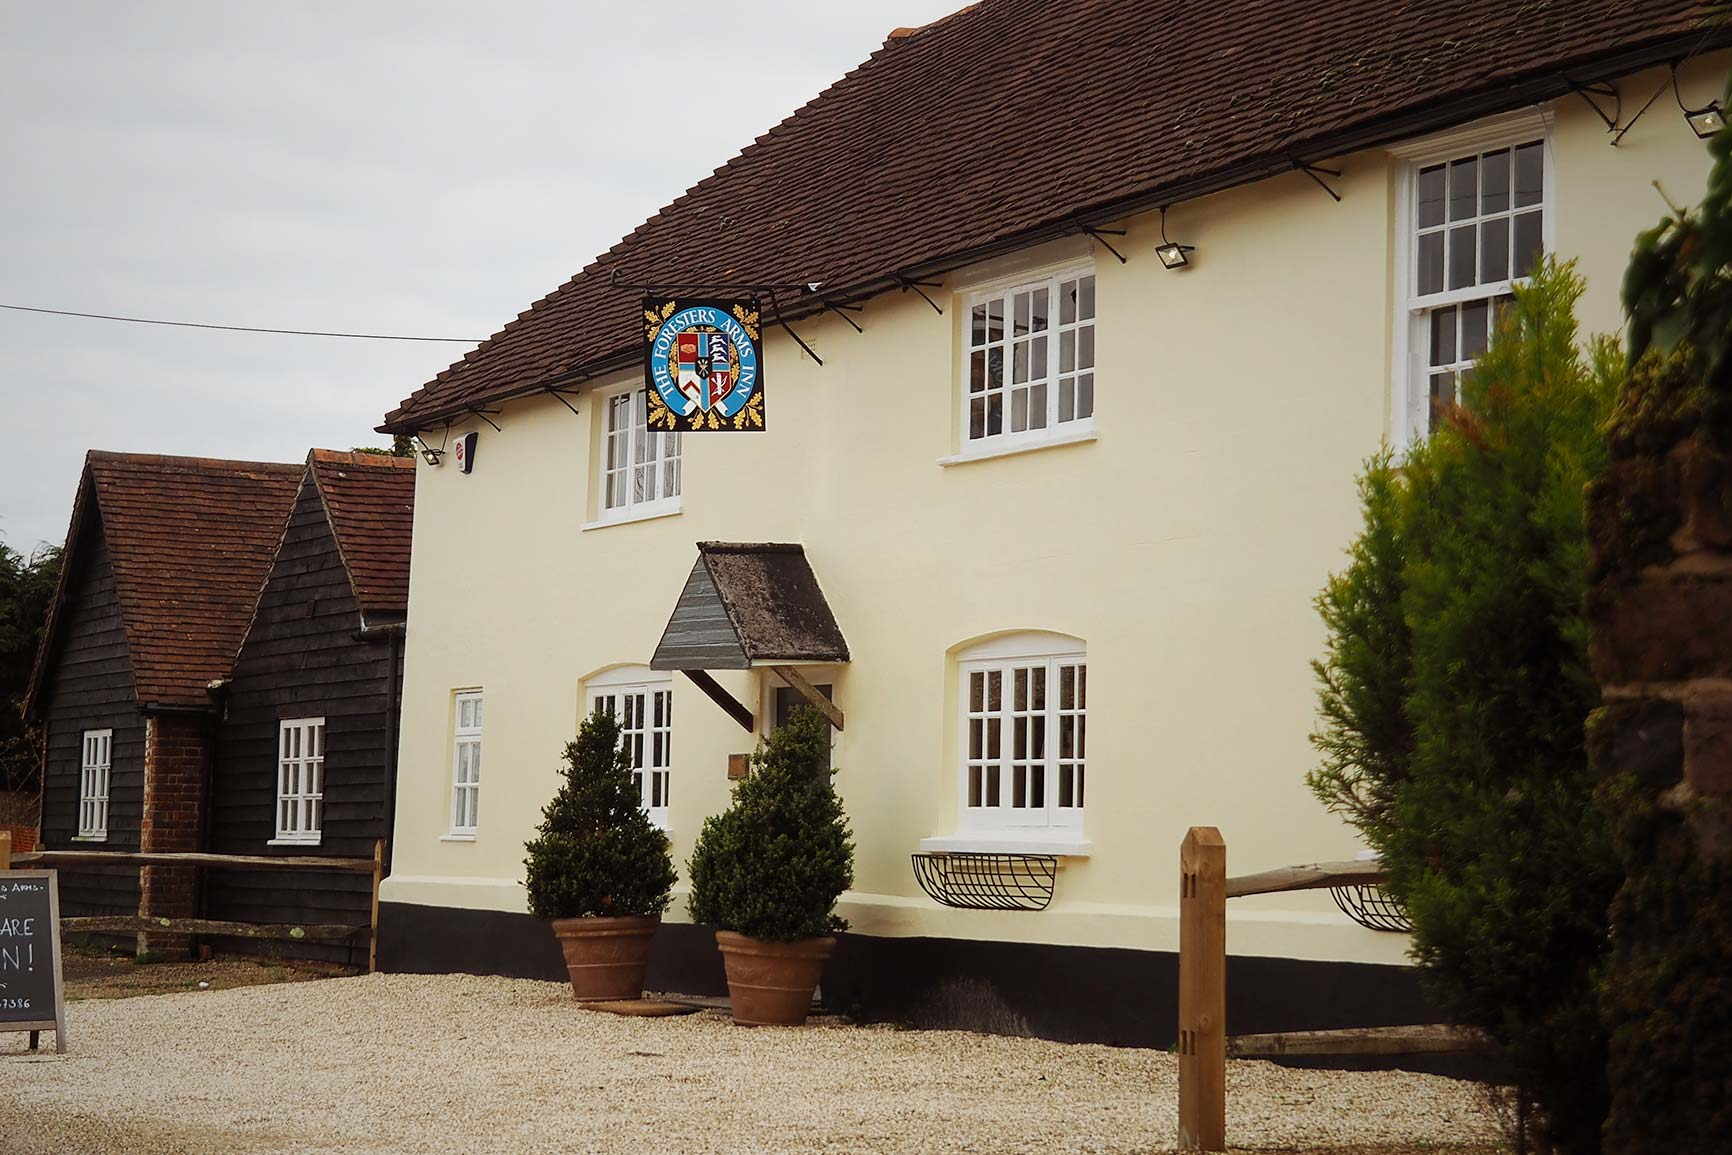 Foresters Arms, Graffham